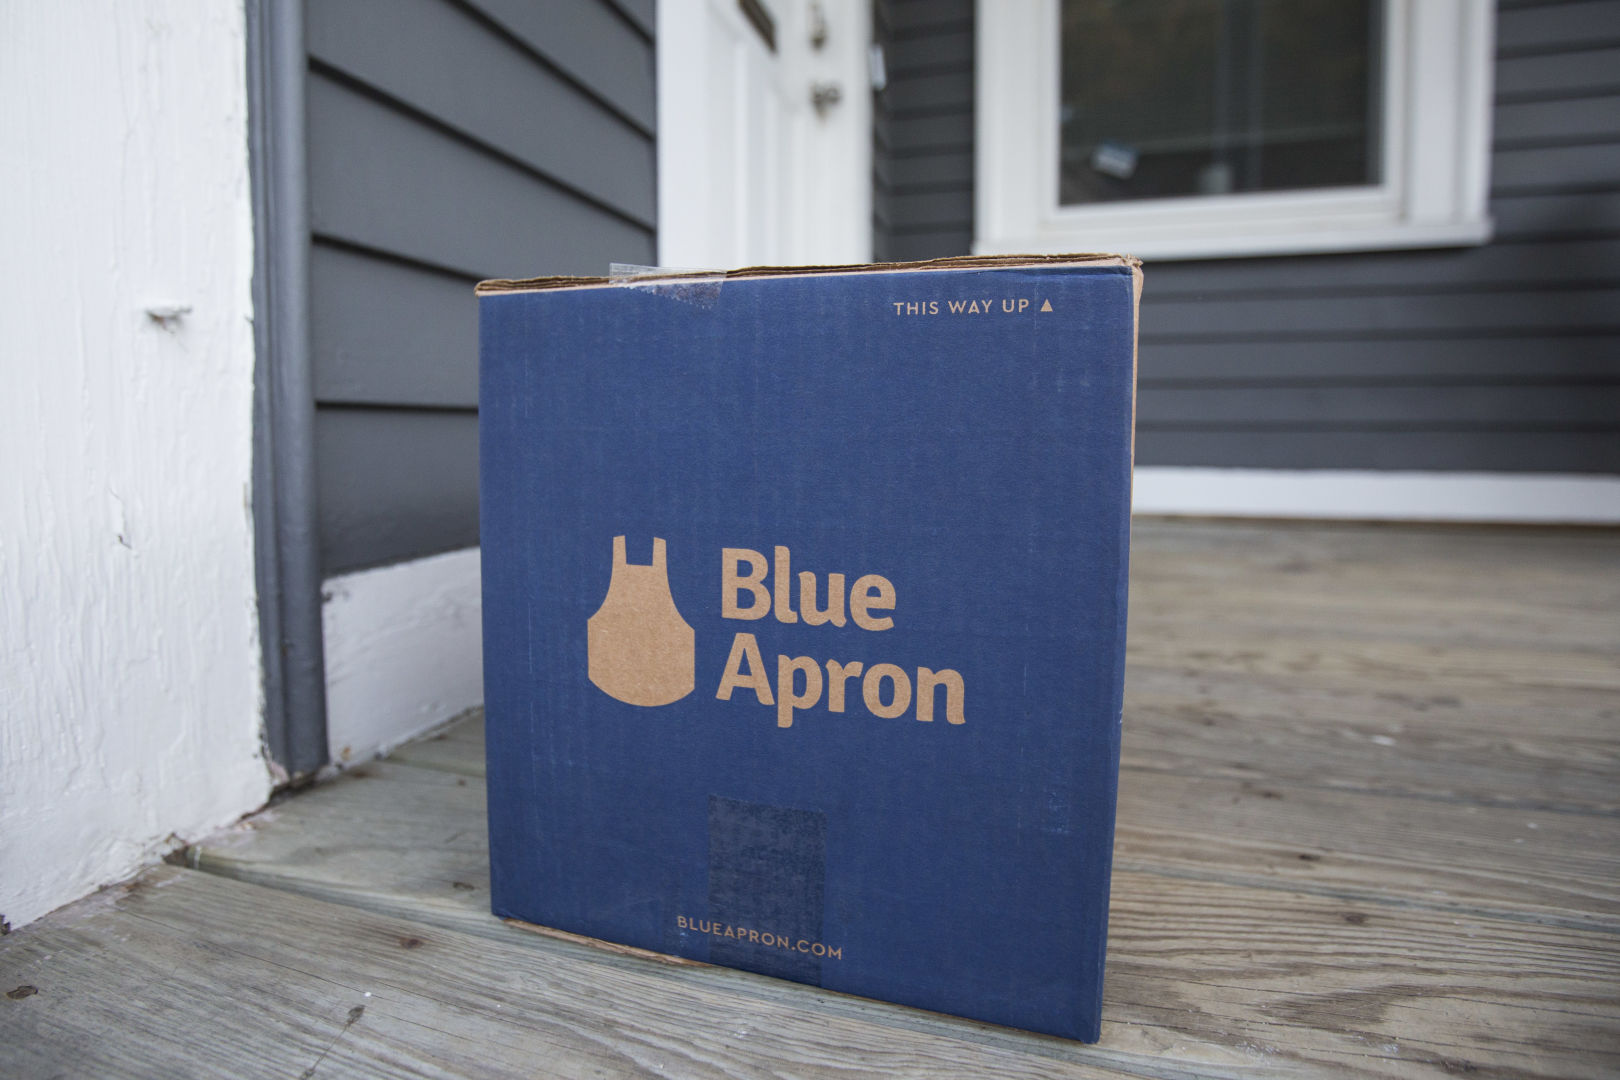 Blue Apron launches deliciously-curated menu with Beyond Meat